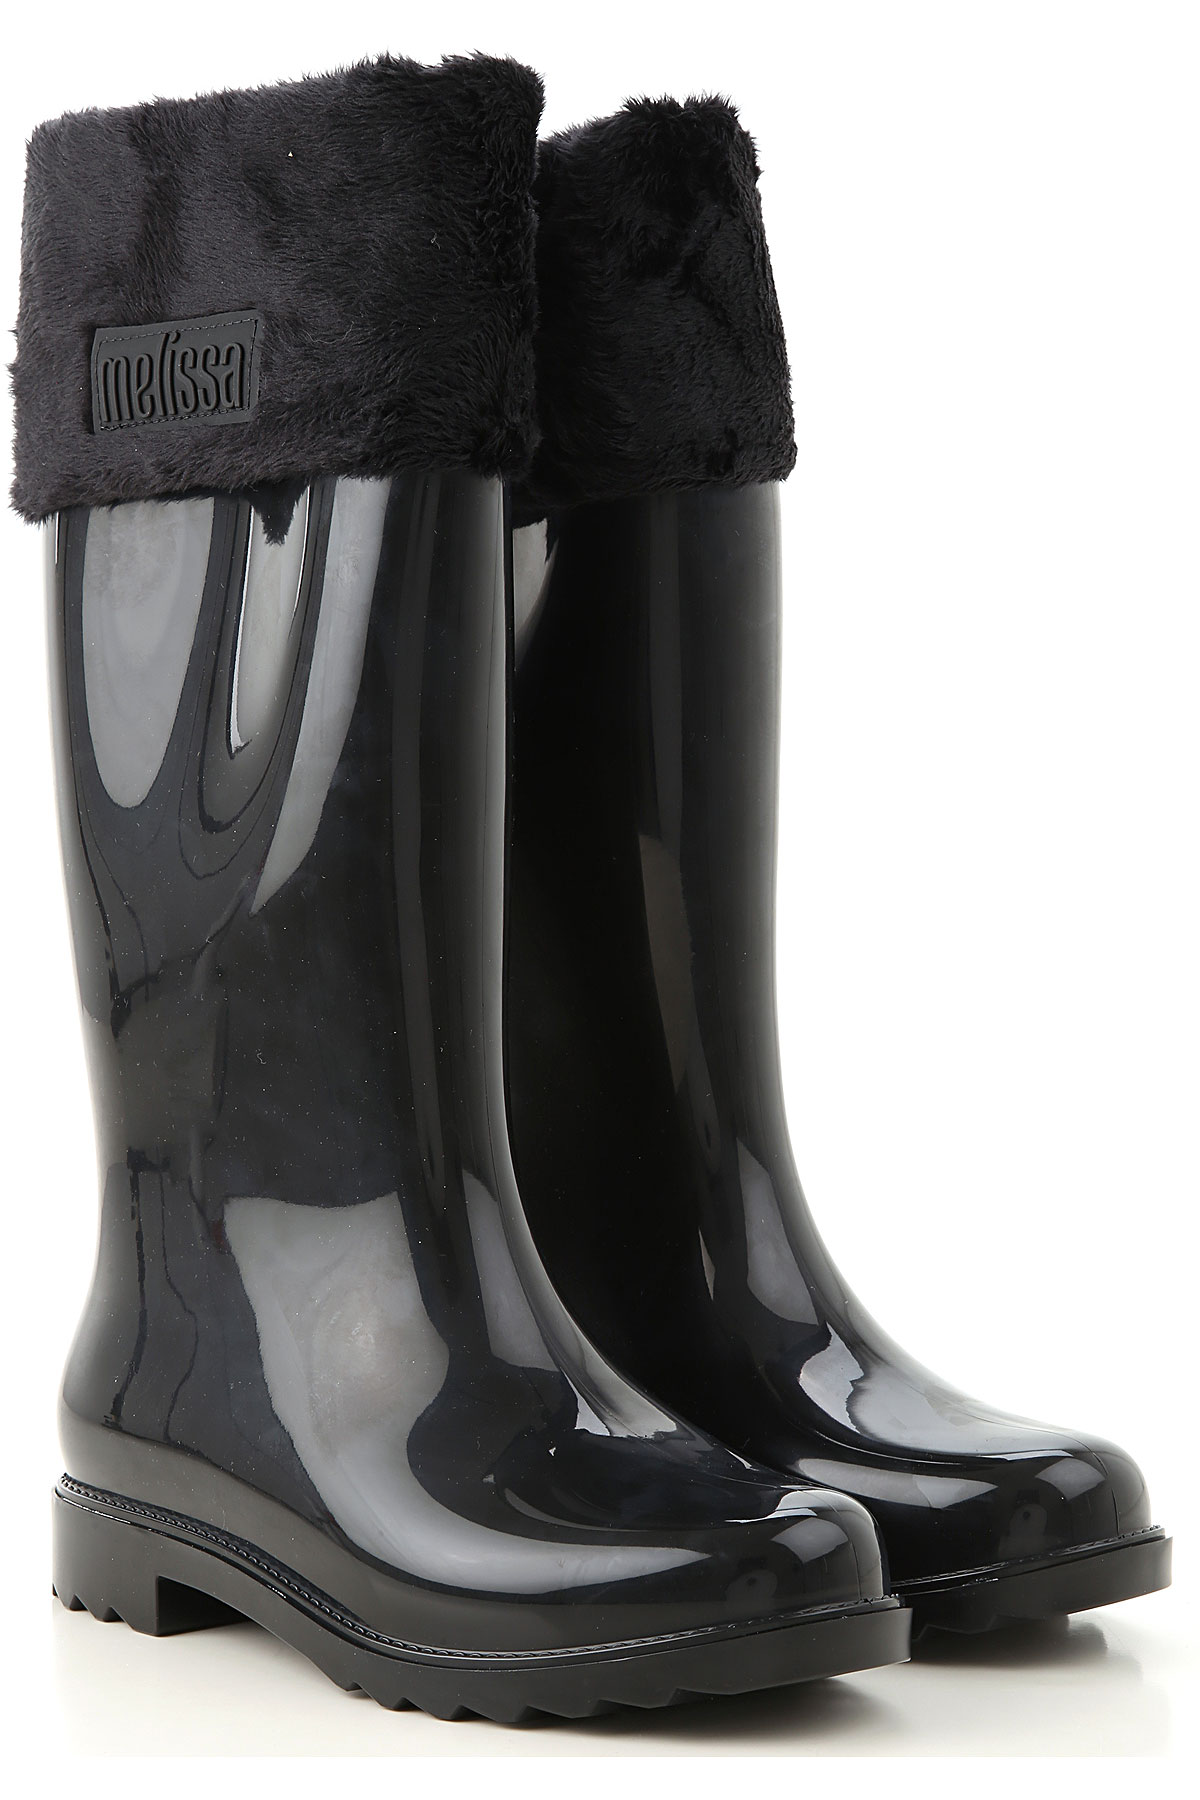 Melissa Boots for Women, Booties On Sale, Black, PVC, 2019, USA 5 - EUR 35/36 USA 6 - EUR 37 USA 7 - EUR 38 USA 8 - EUR 39 USA 10 - EUR 41/42